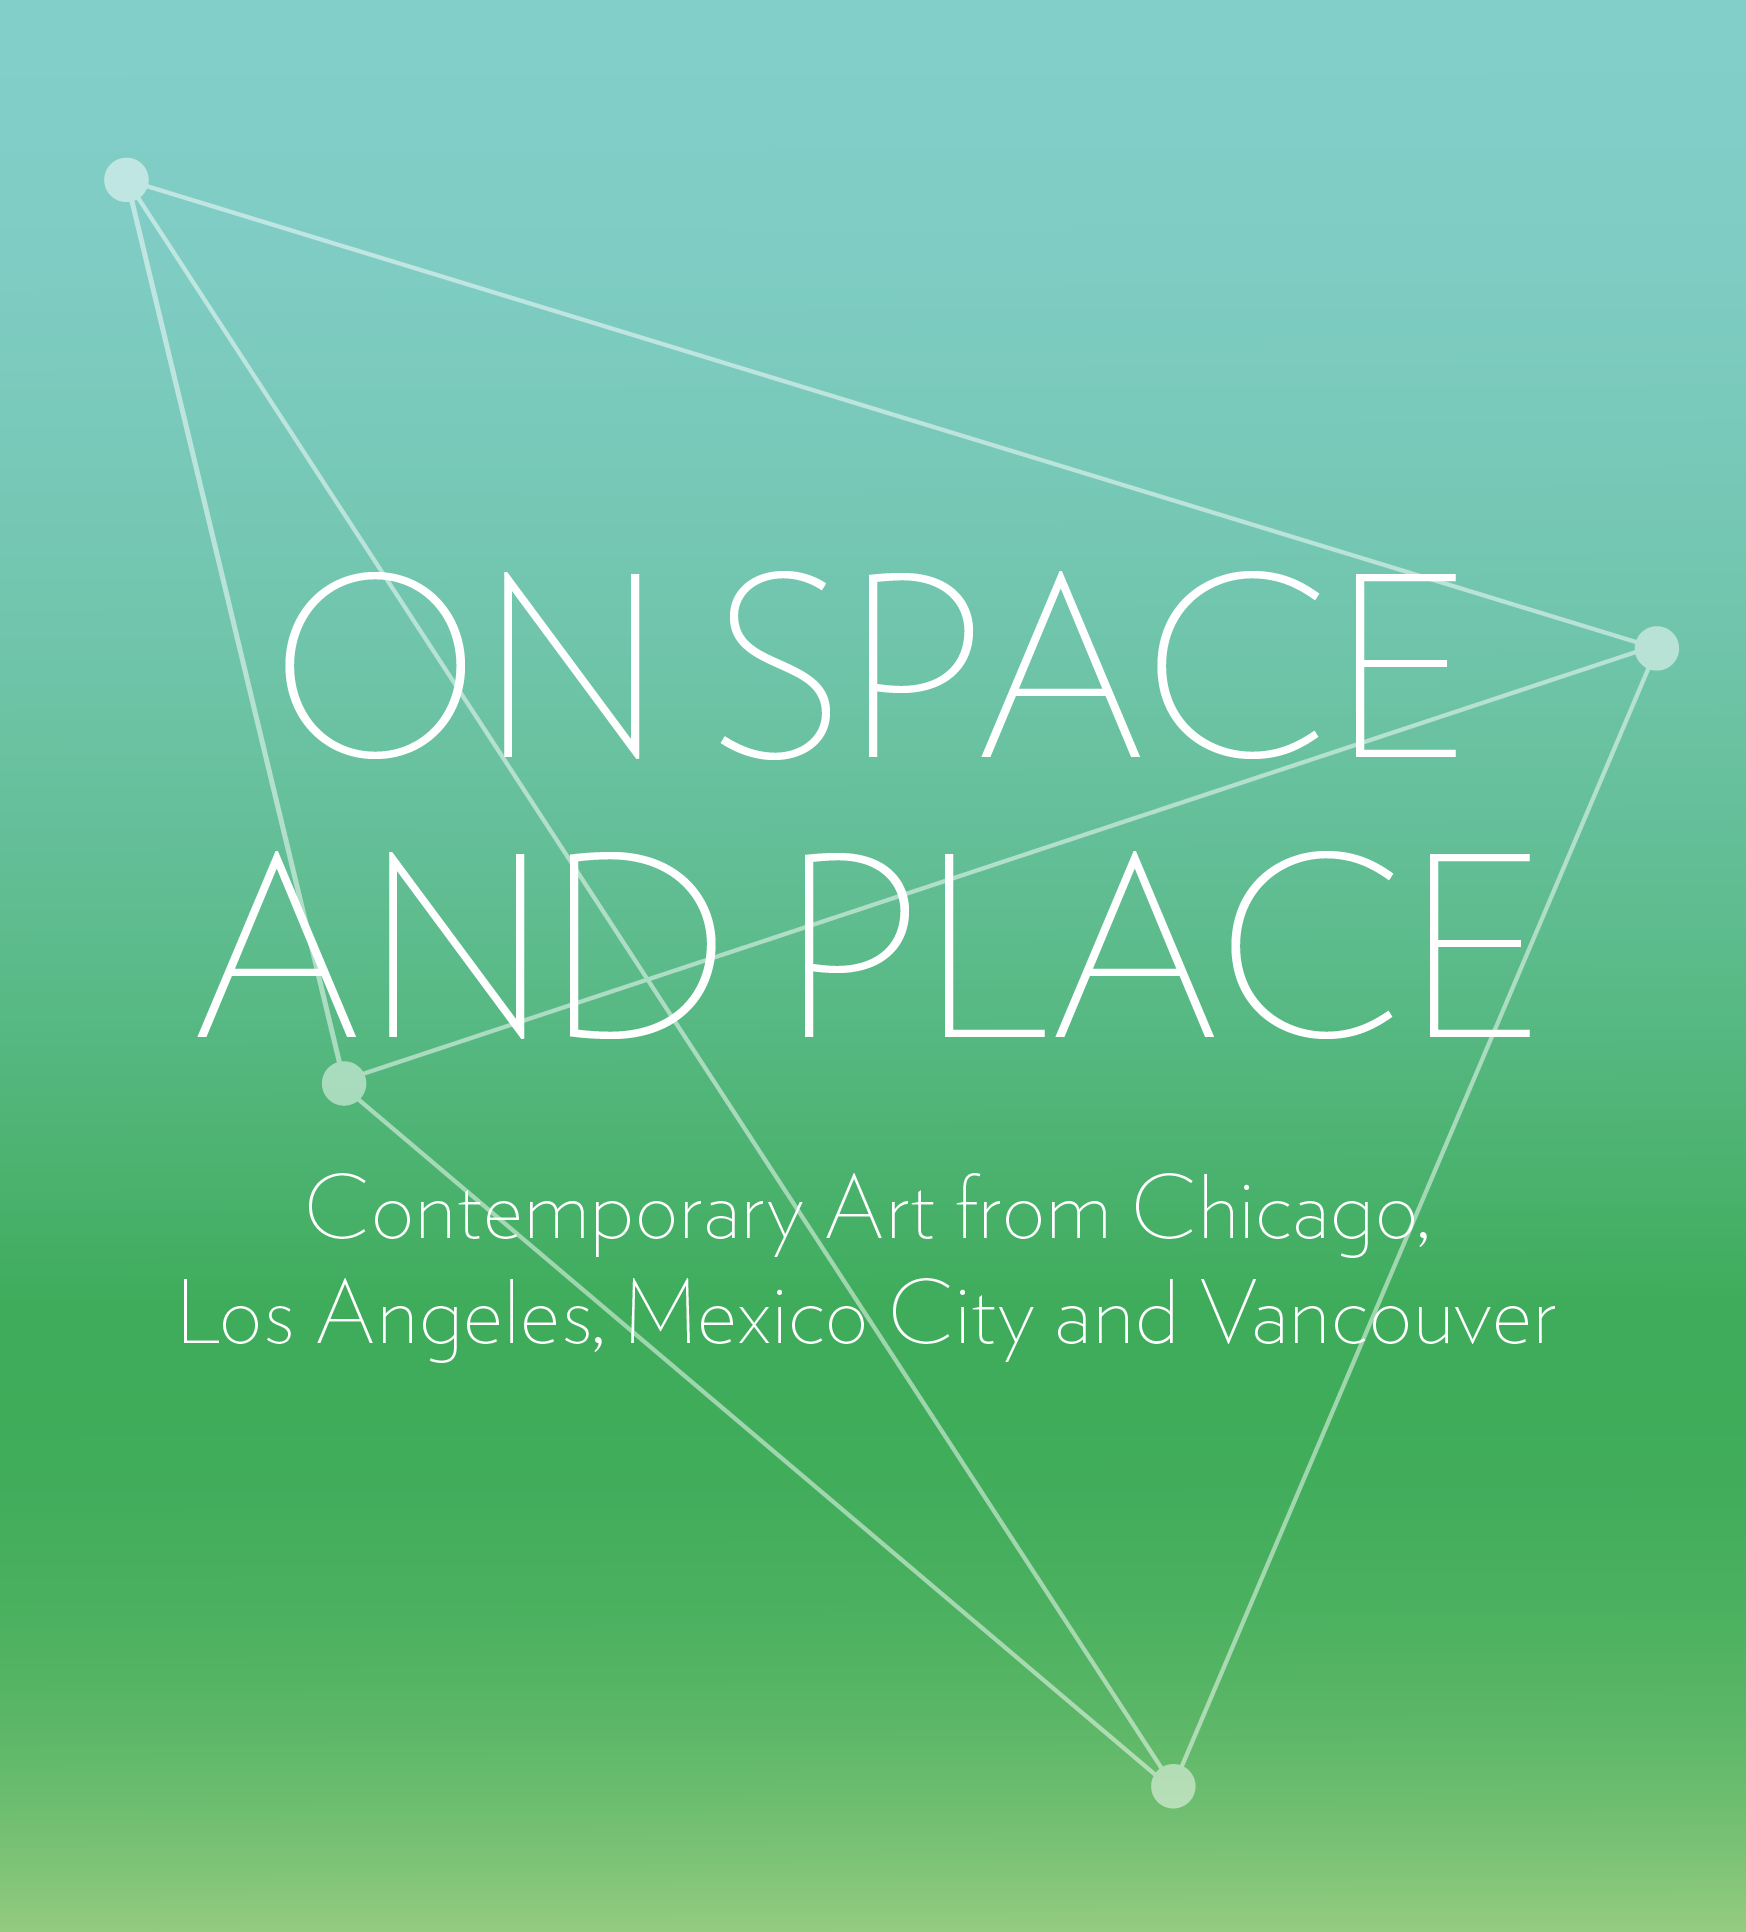 ART 21 on Space and Place